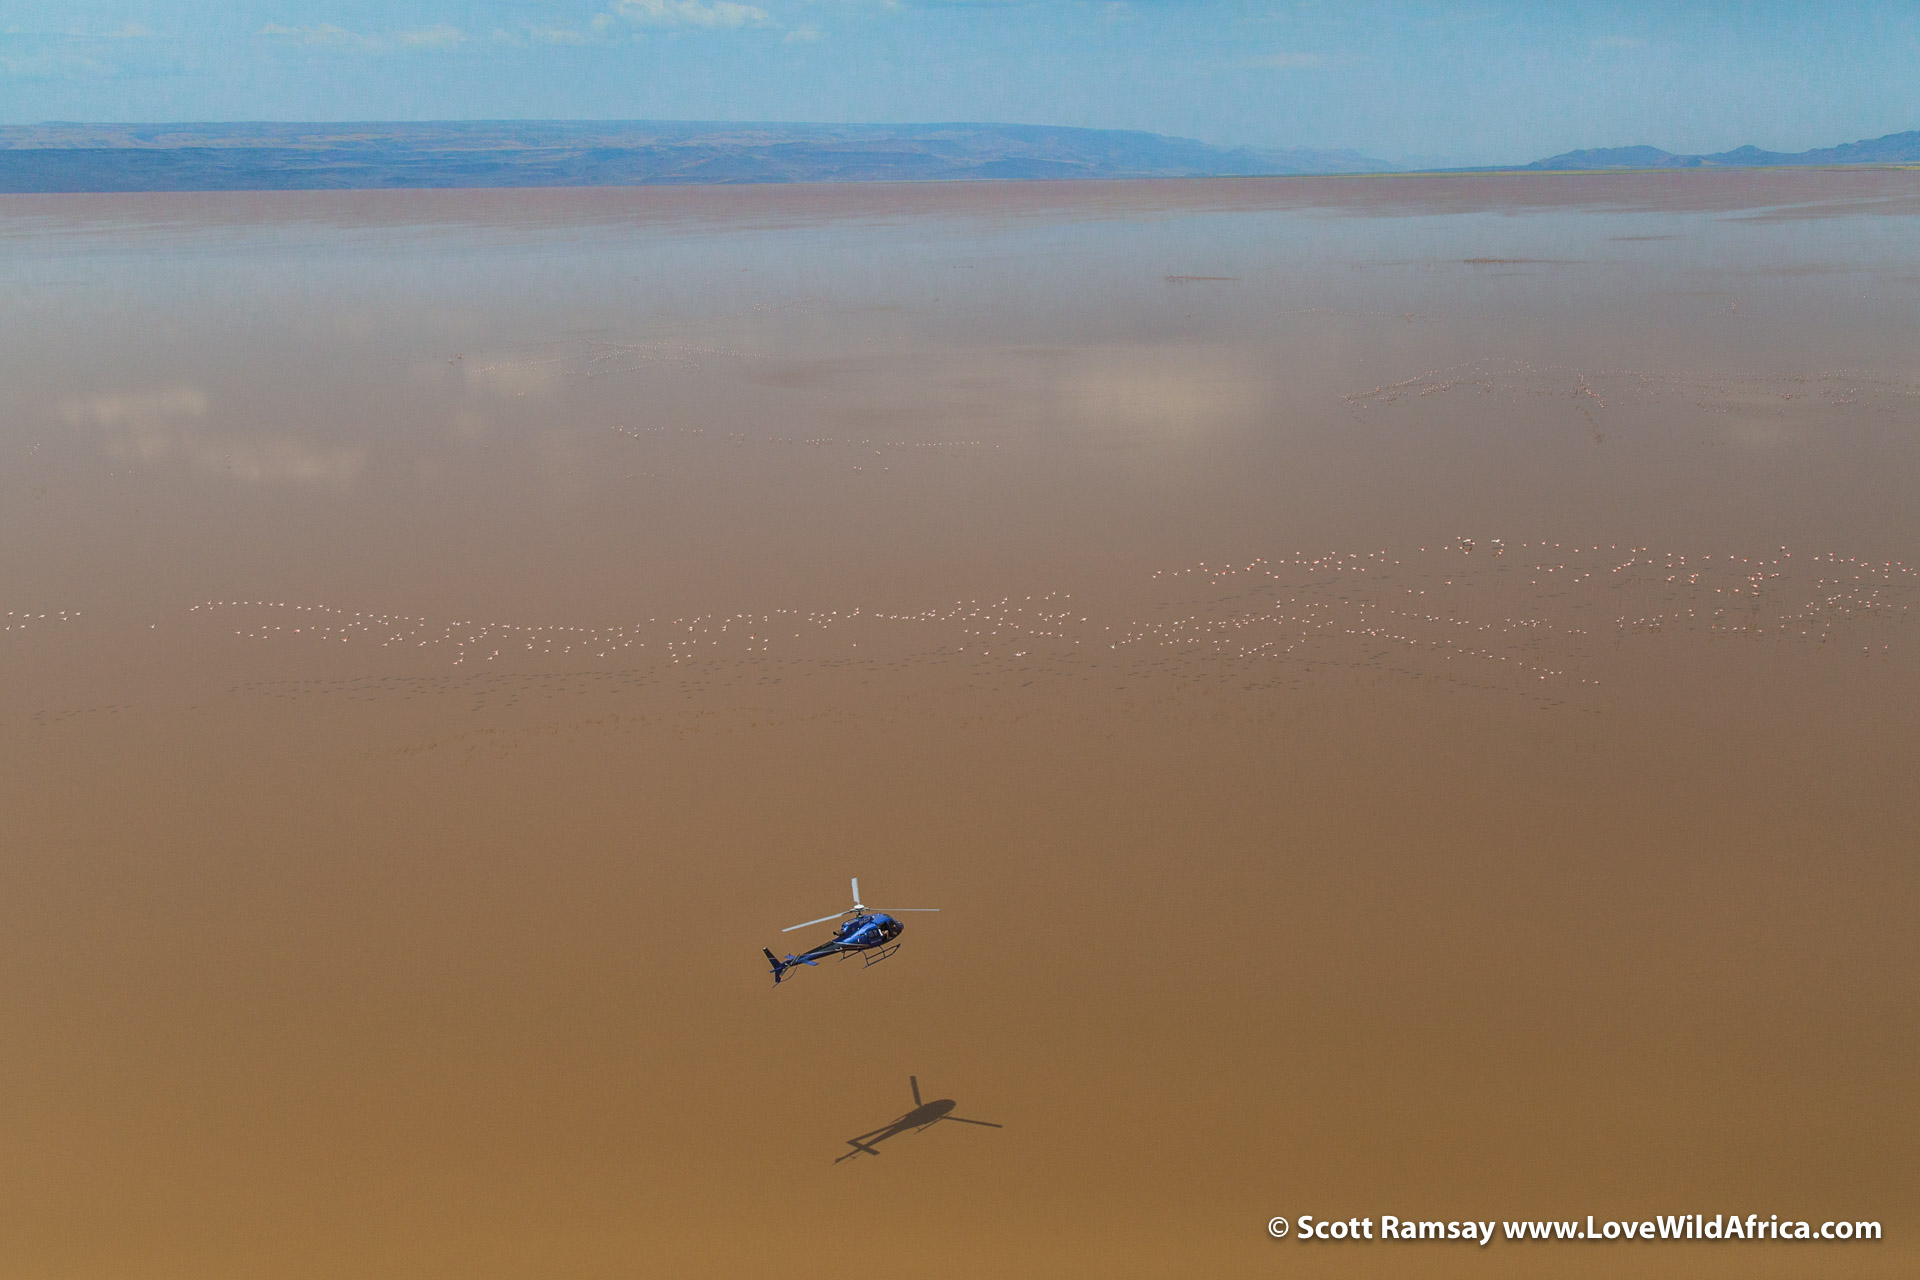 The rift valley soda lakes - like Lake Logipi - are highly saline and alkaline, and toxic to most animals, except flamingos, who thrive by feeding on the microscopic cyanbobacteria alga.